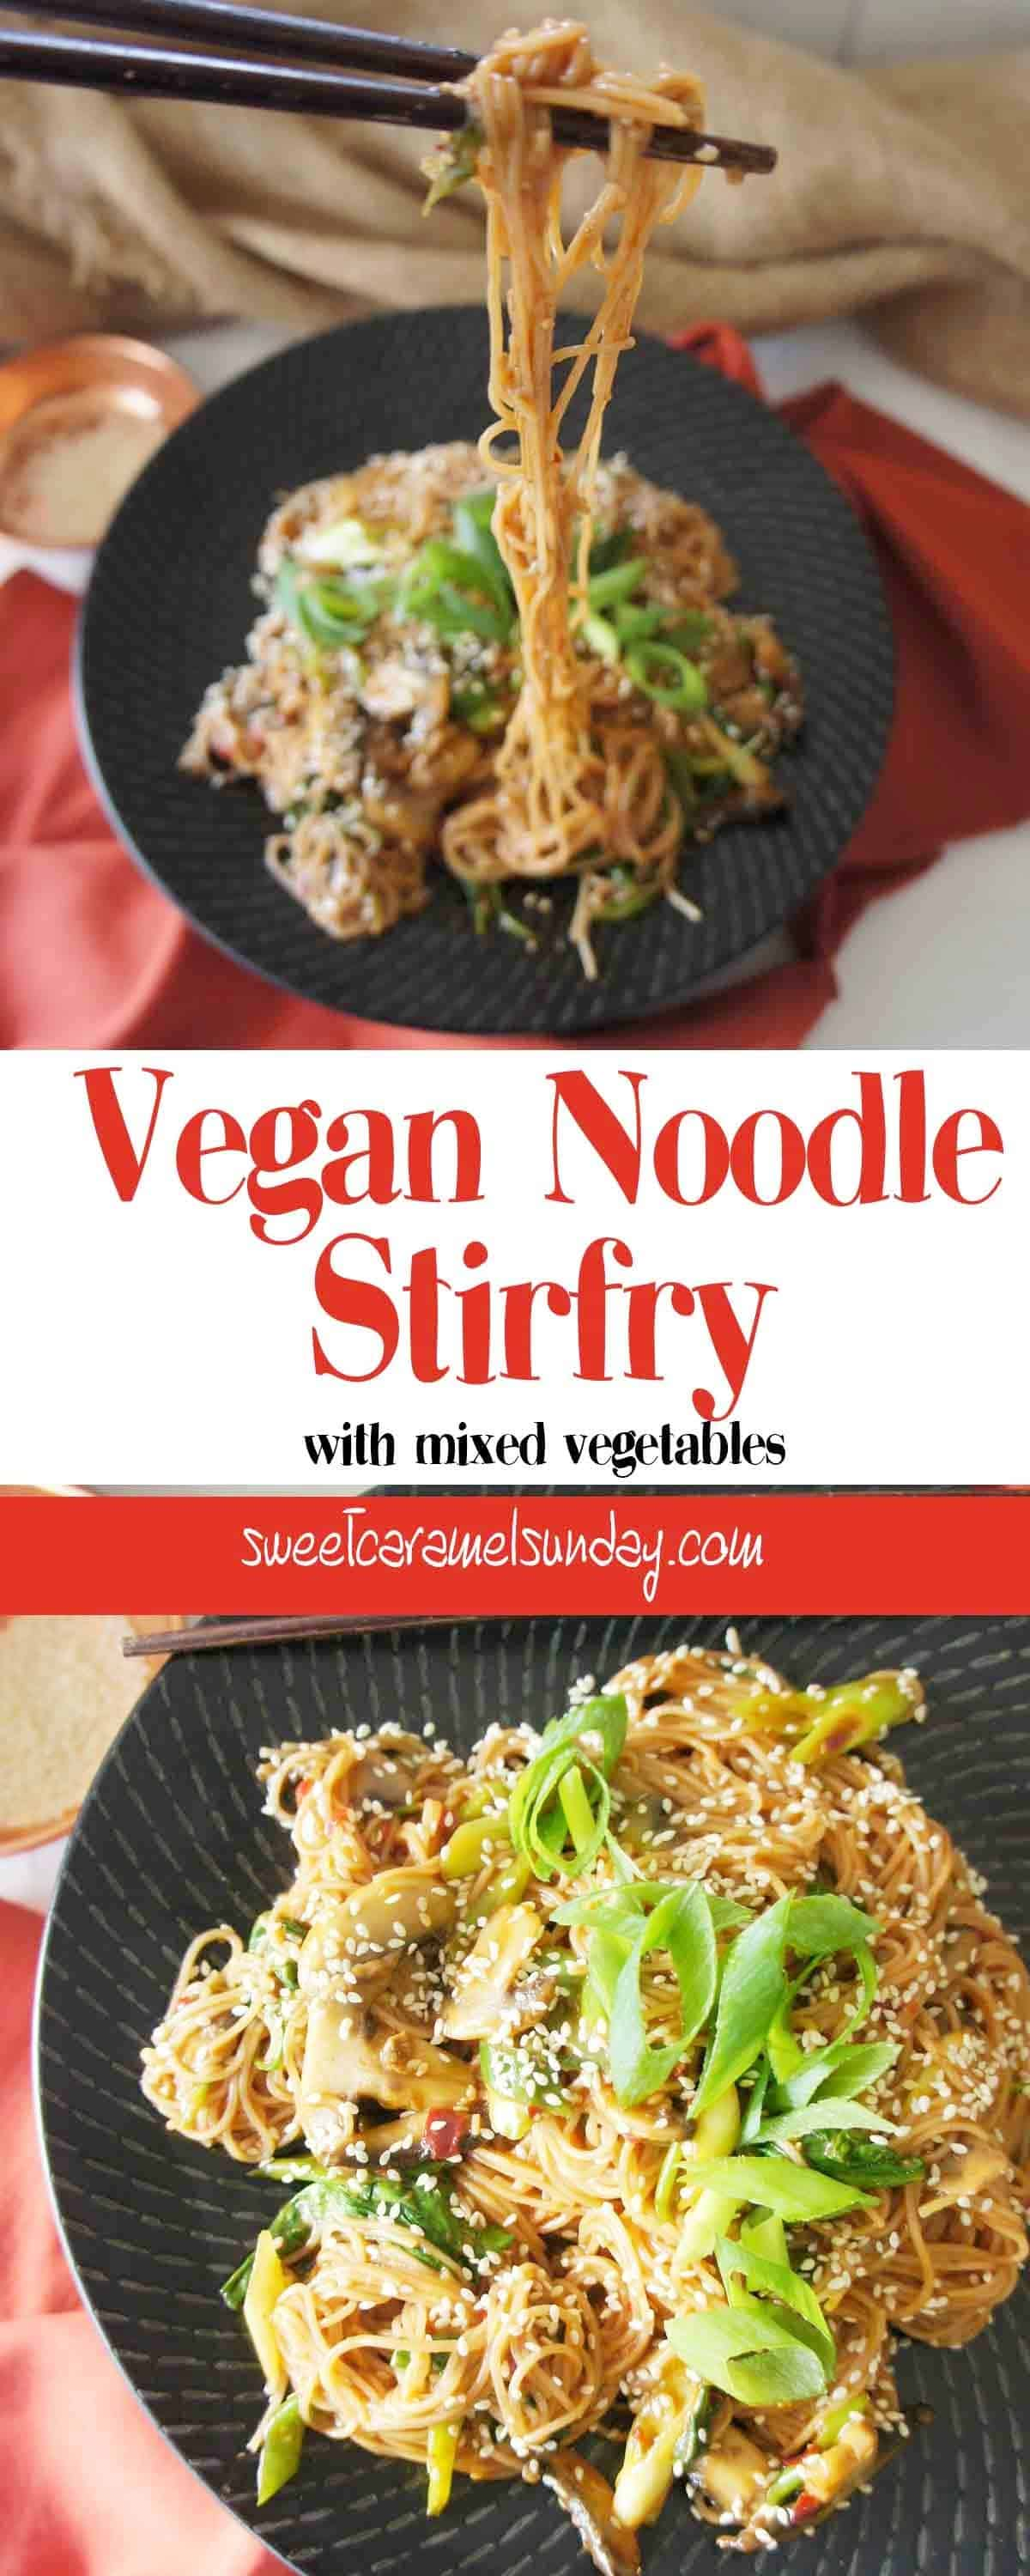 Vegan Noodle Stirfry with text overlay